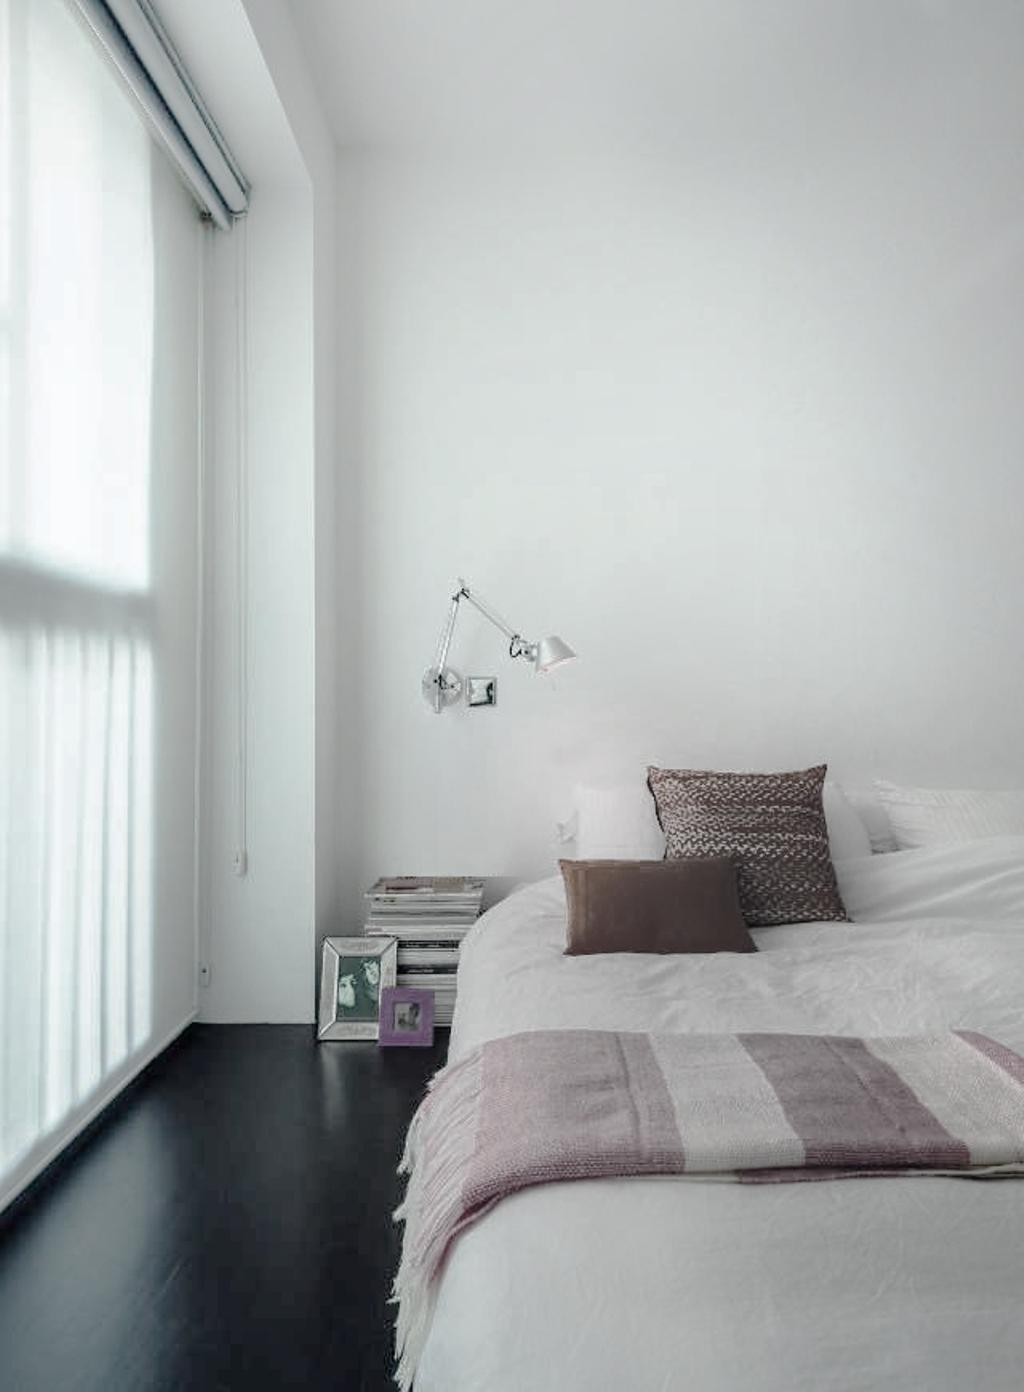 Scandinavian, Condo, Bedroom, The Gallery Apartment, Architect, UPSTAIRS_, Modern Contemporary Bedroom, Roll Down Curtain, King Size Bed, Cozy, Cosy, Indoors, Interior Design, Room, Book